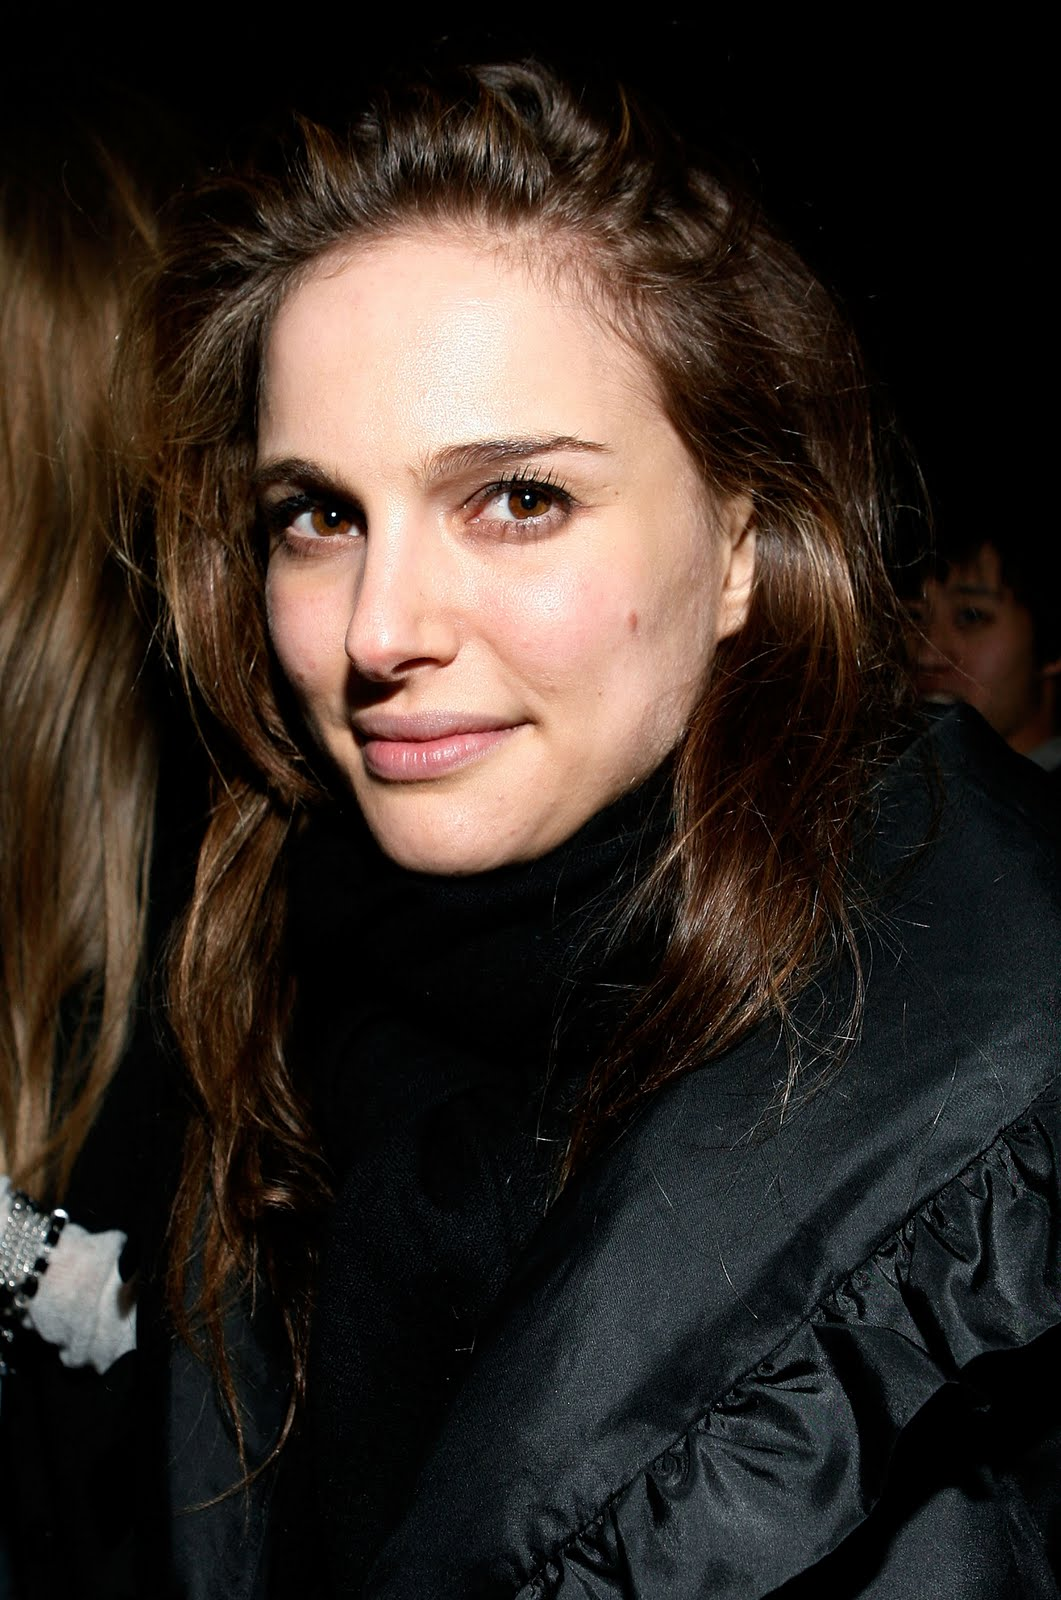 a new life hartz Natalie Portman in Different Hairstyle Look